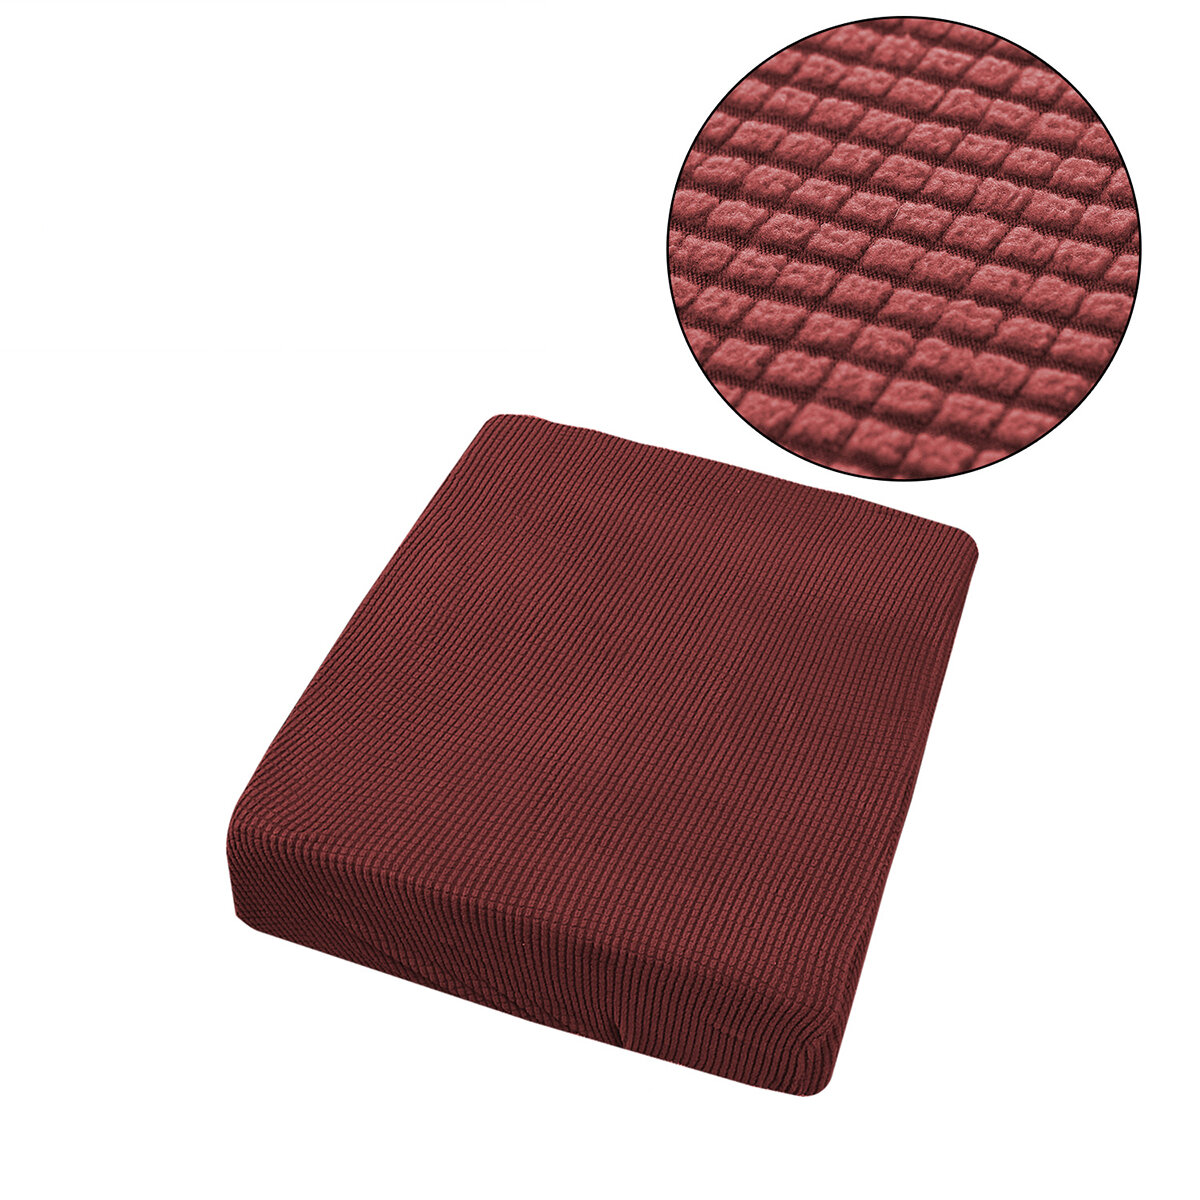 Stretchy Sofa Seat Cushion Cover Couch